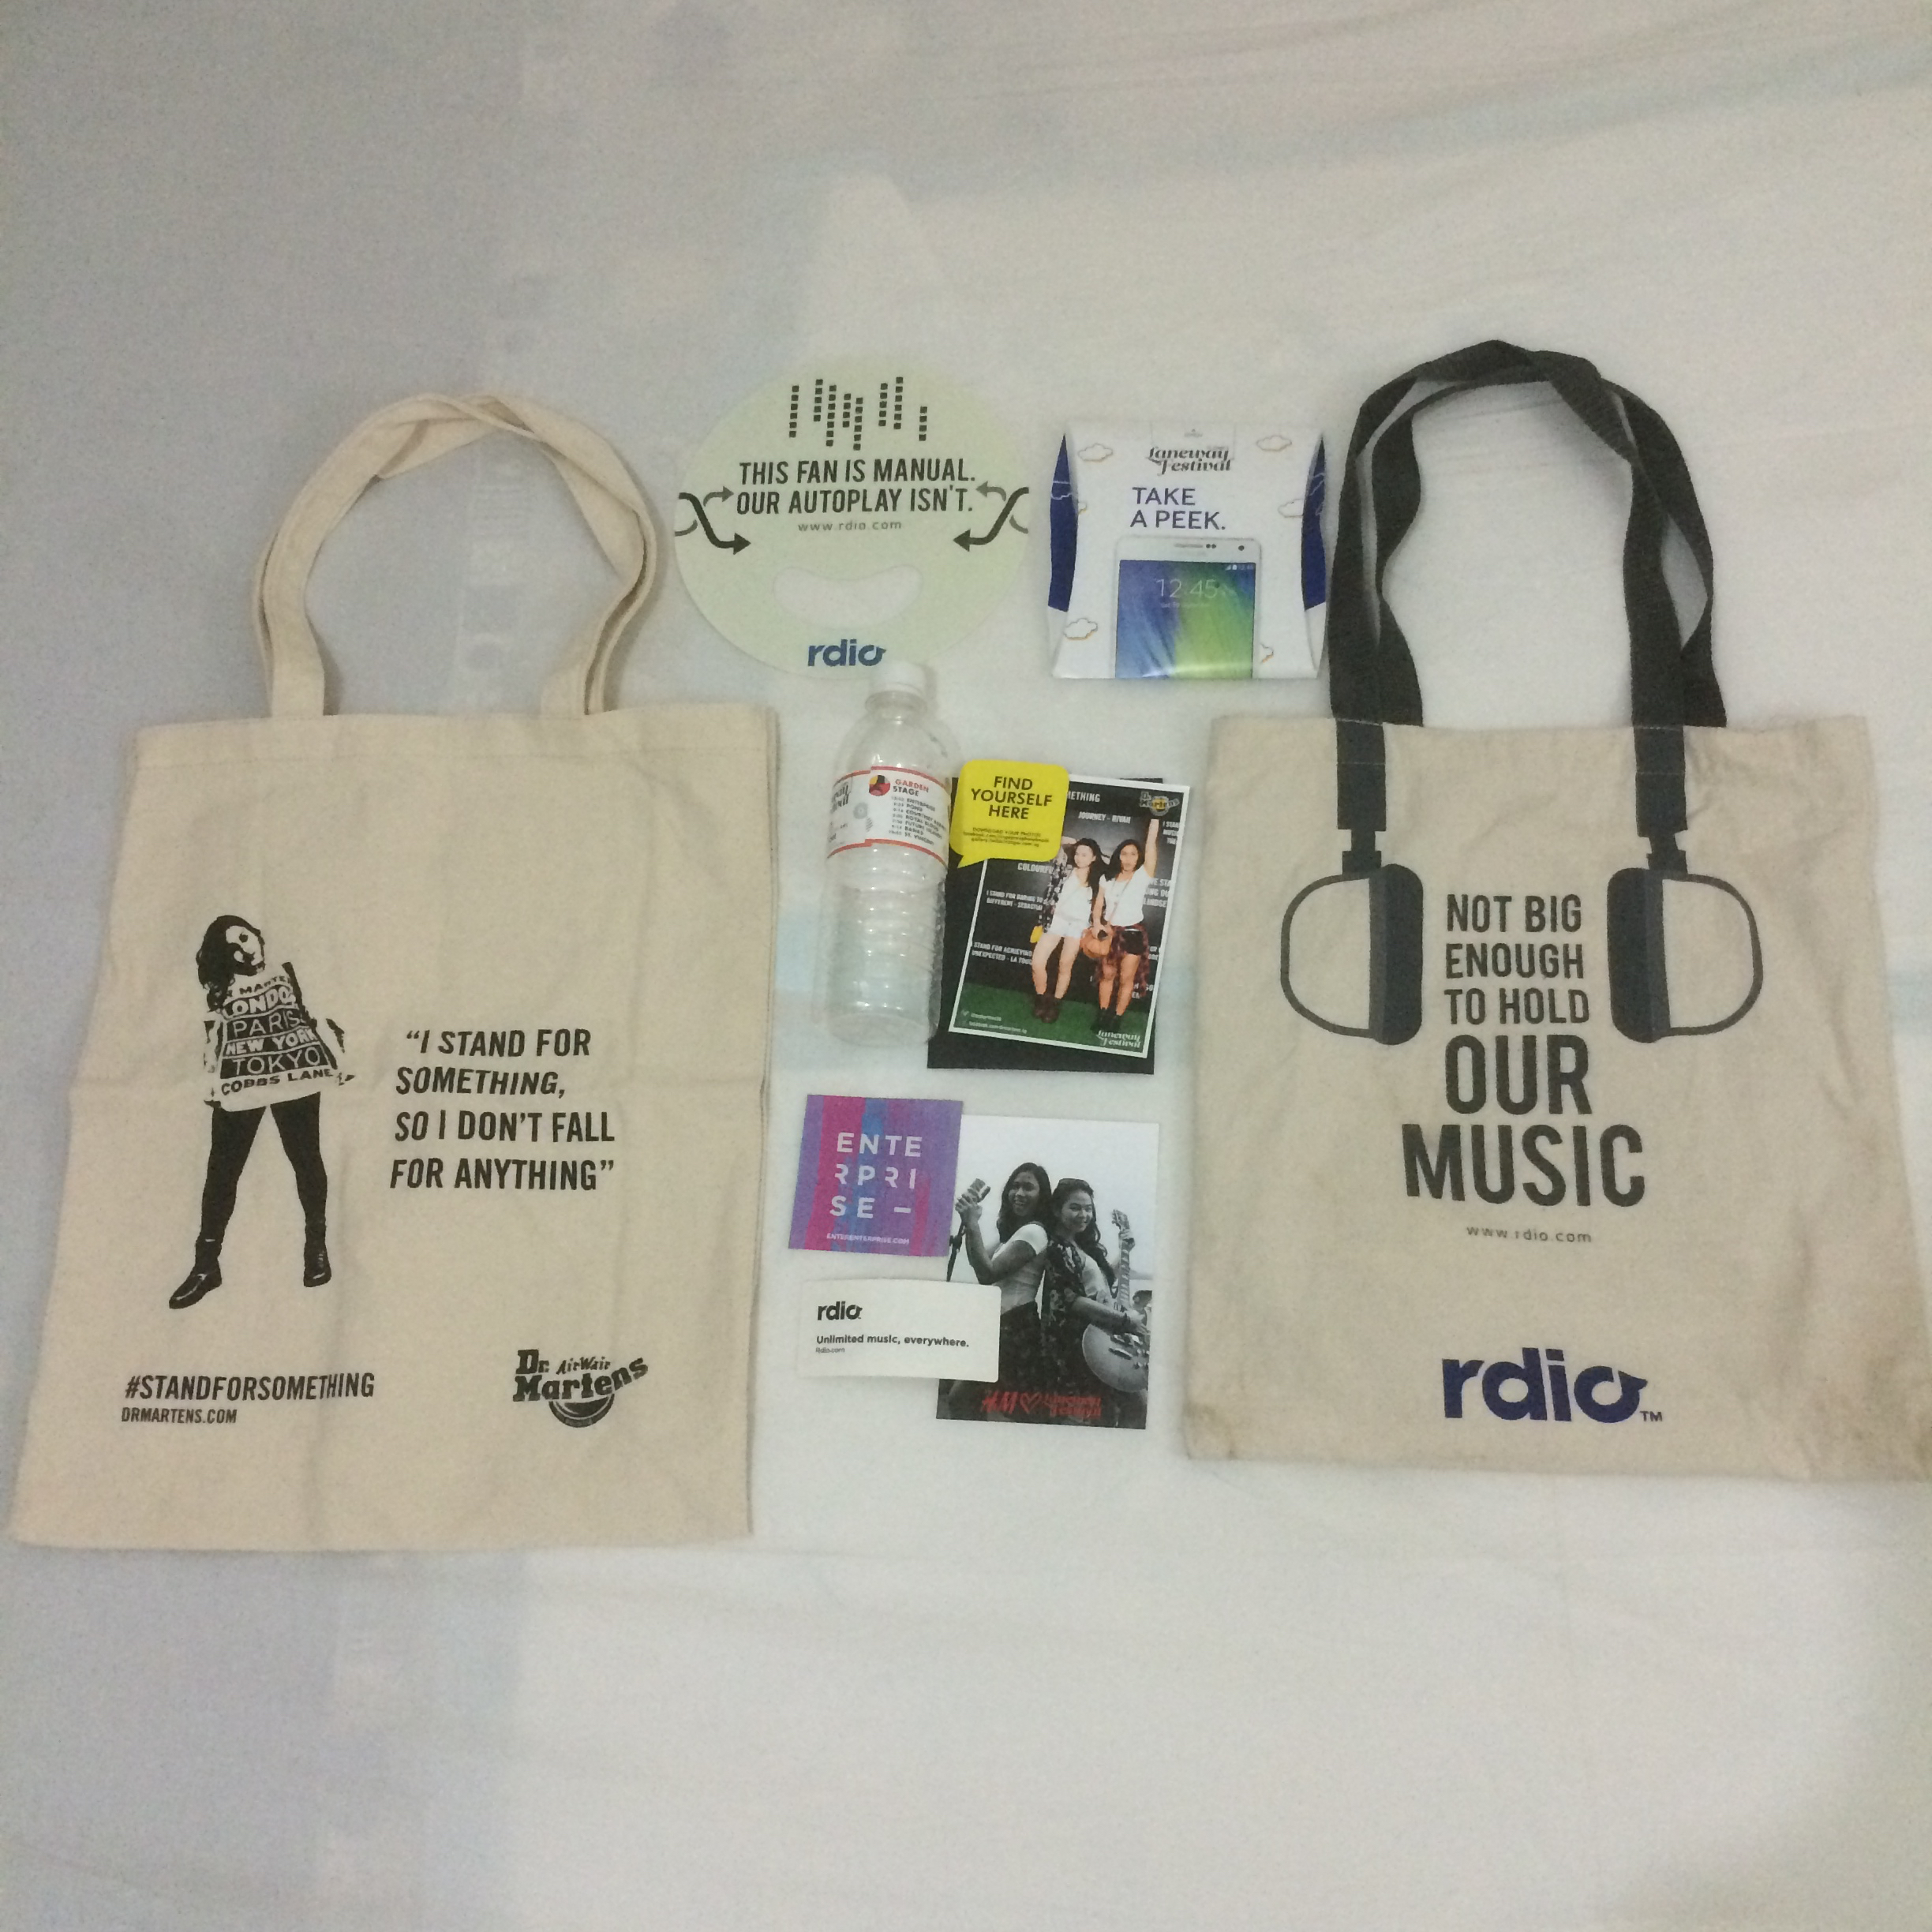 Dr. Martens tote bag, Rdio fan, Samsung rain poncho, free water, photos from Dr. Martens and H&M booth, stickers and Rdio tote bag.